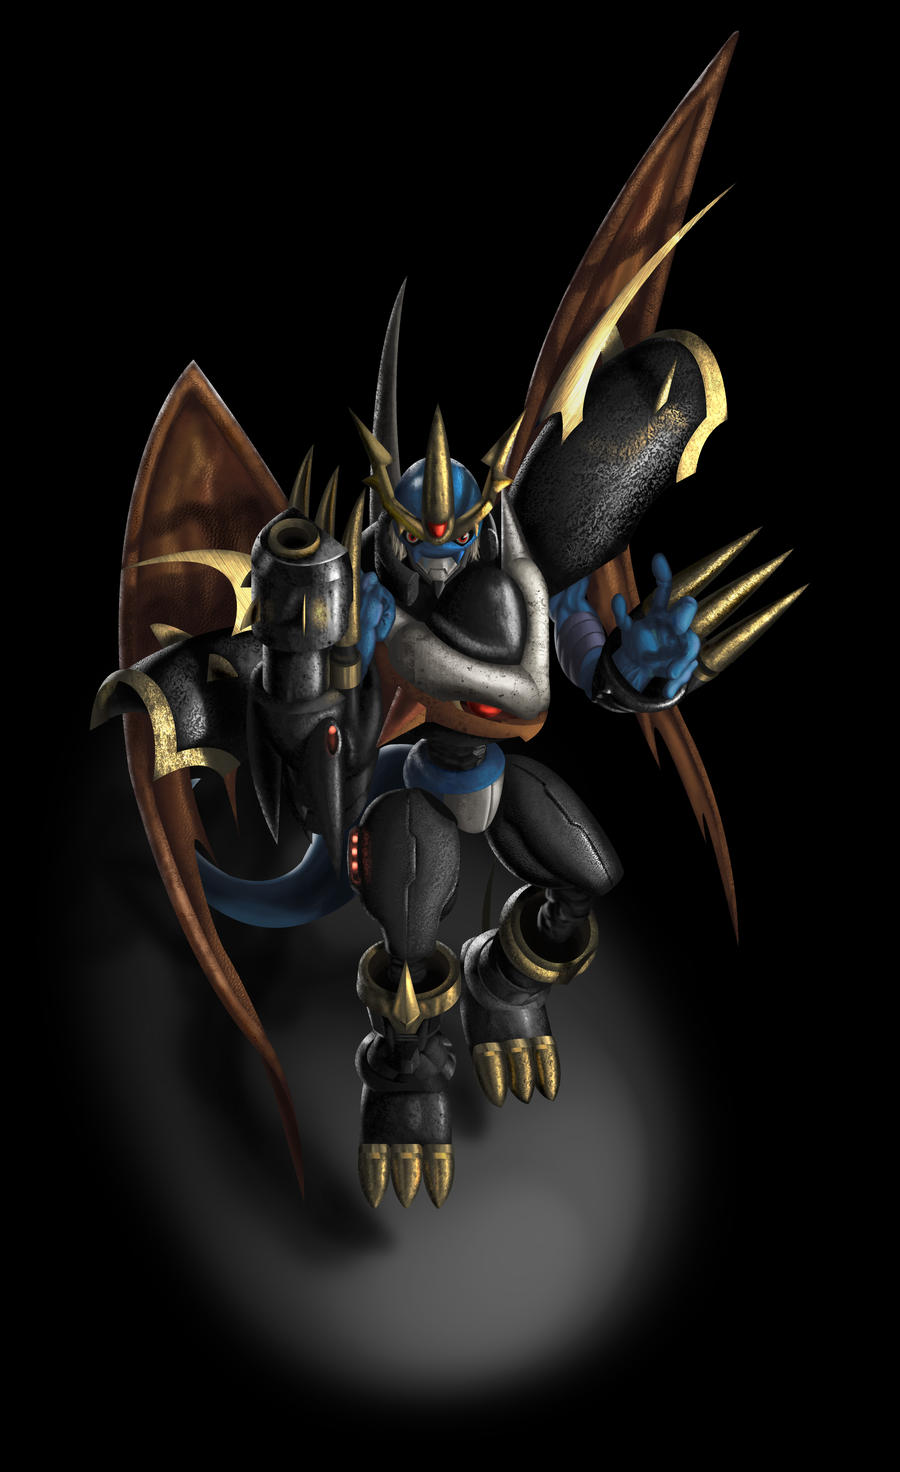 Imperialdramon: Fighter Mode by Mearns on DeviantArt